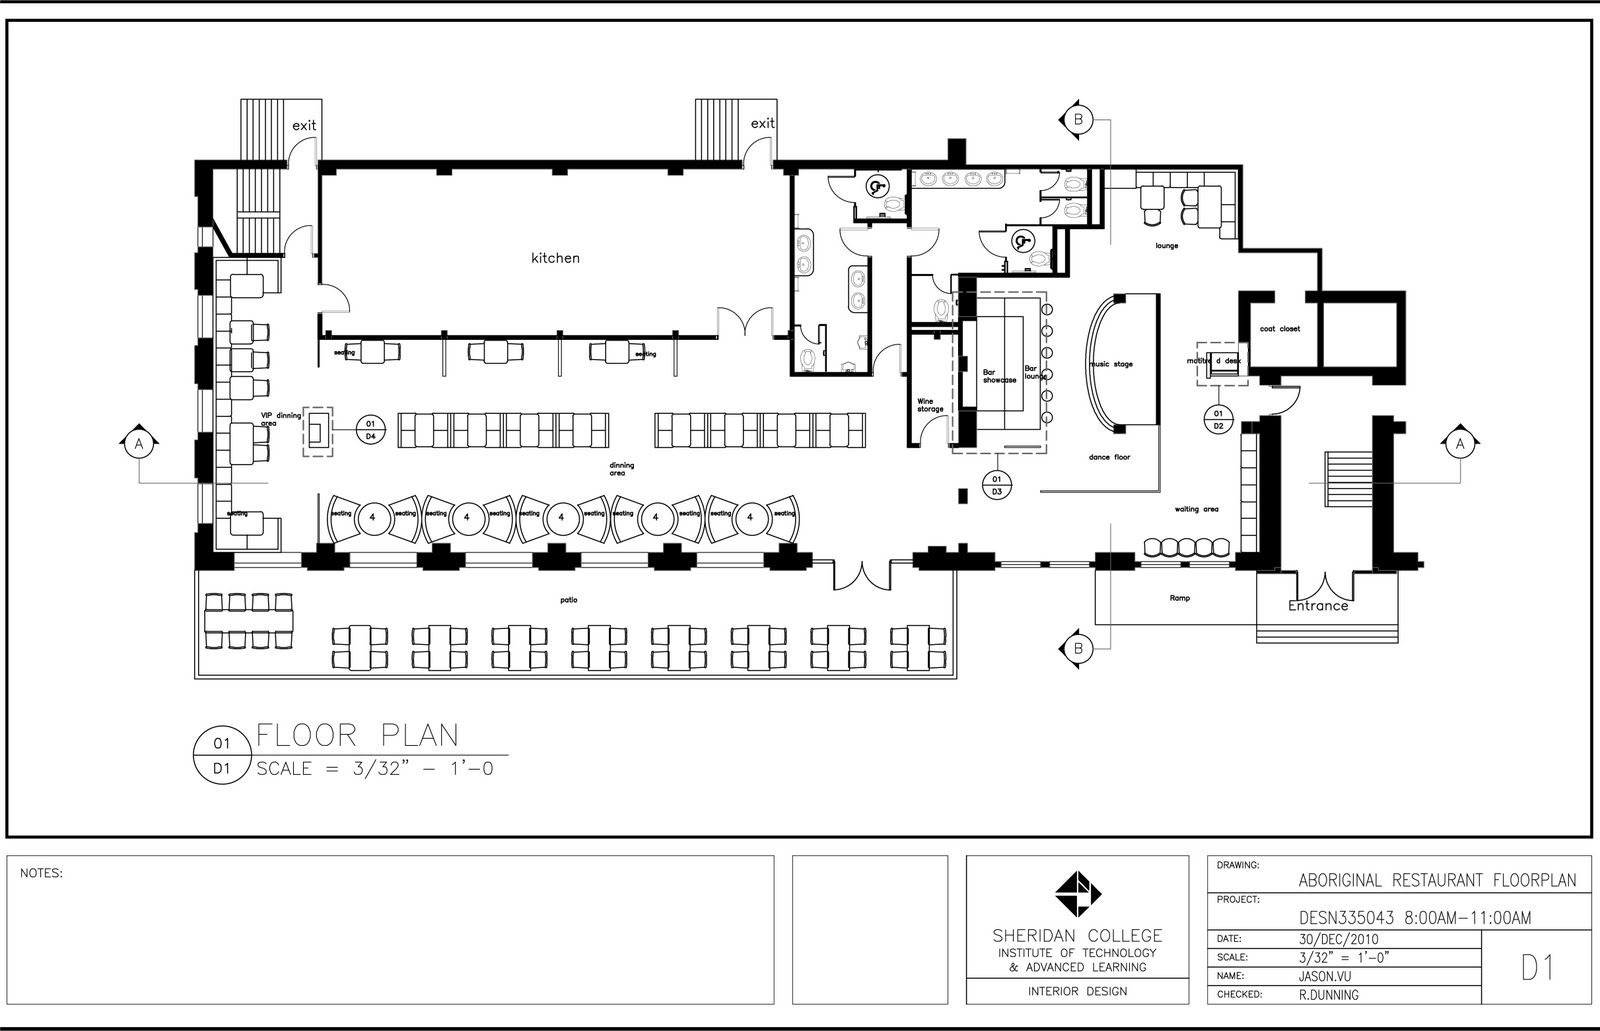 Restaurant Floor Plans Opera House And The Great Outdoors Best Home Decoration World Class